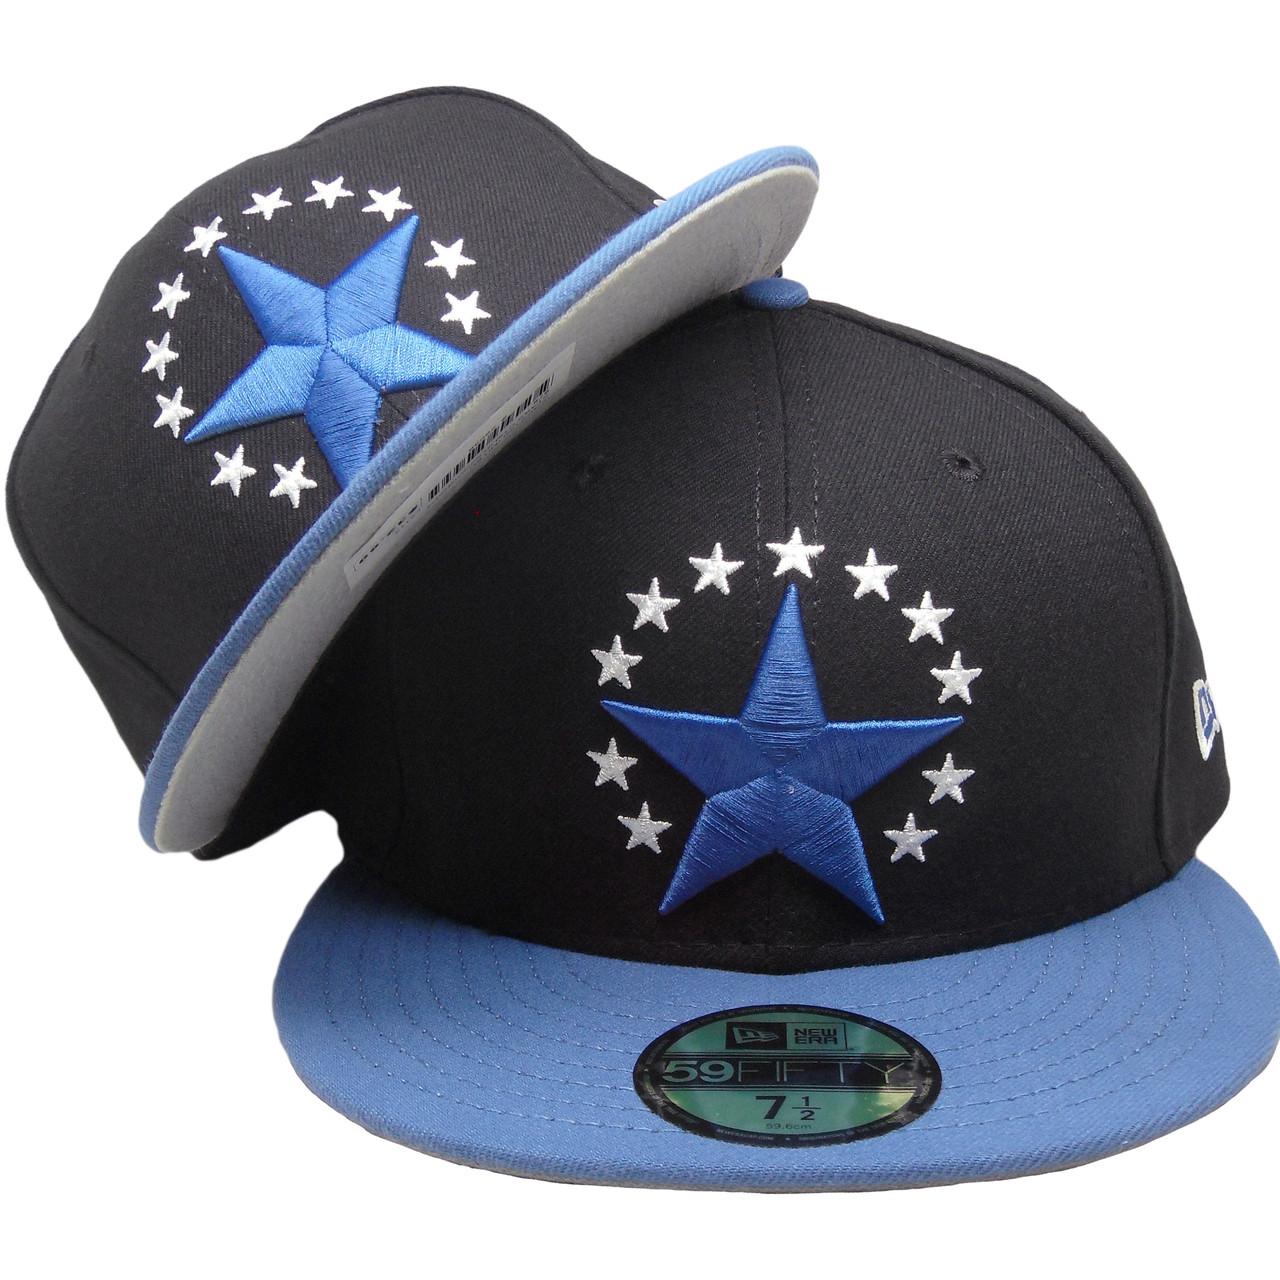 ... switzerland stars new era custom made 59fifty fitted hat black flint  blue. larger more photos 87ff308c5